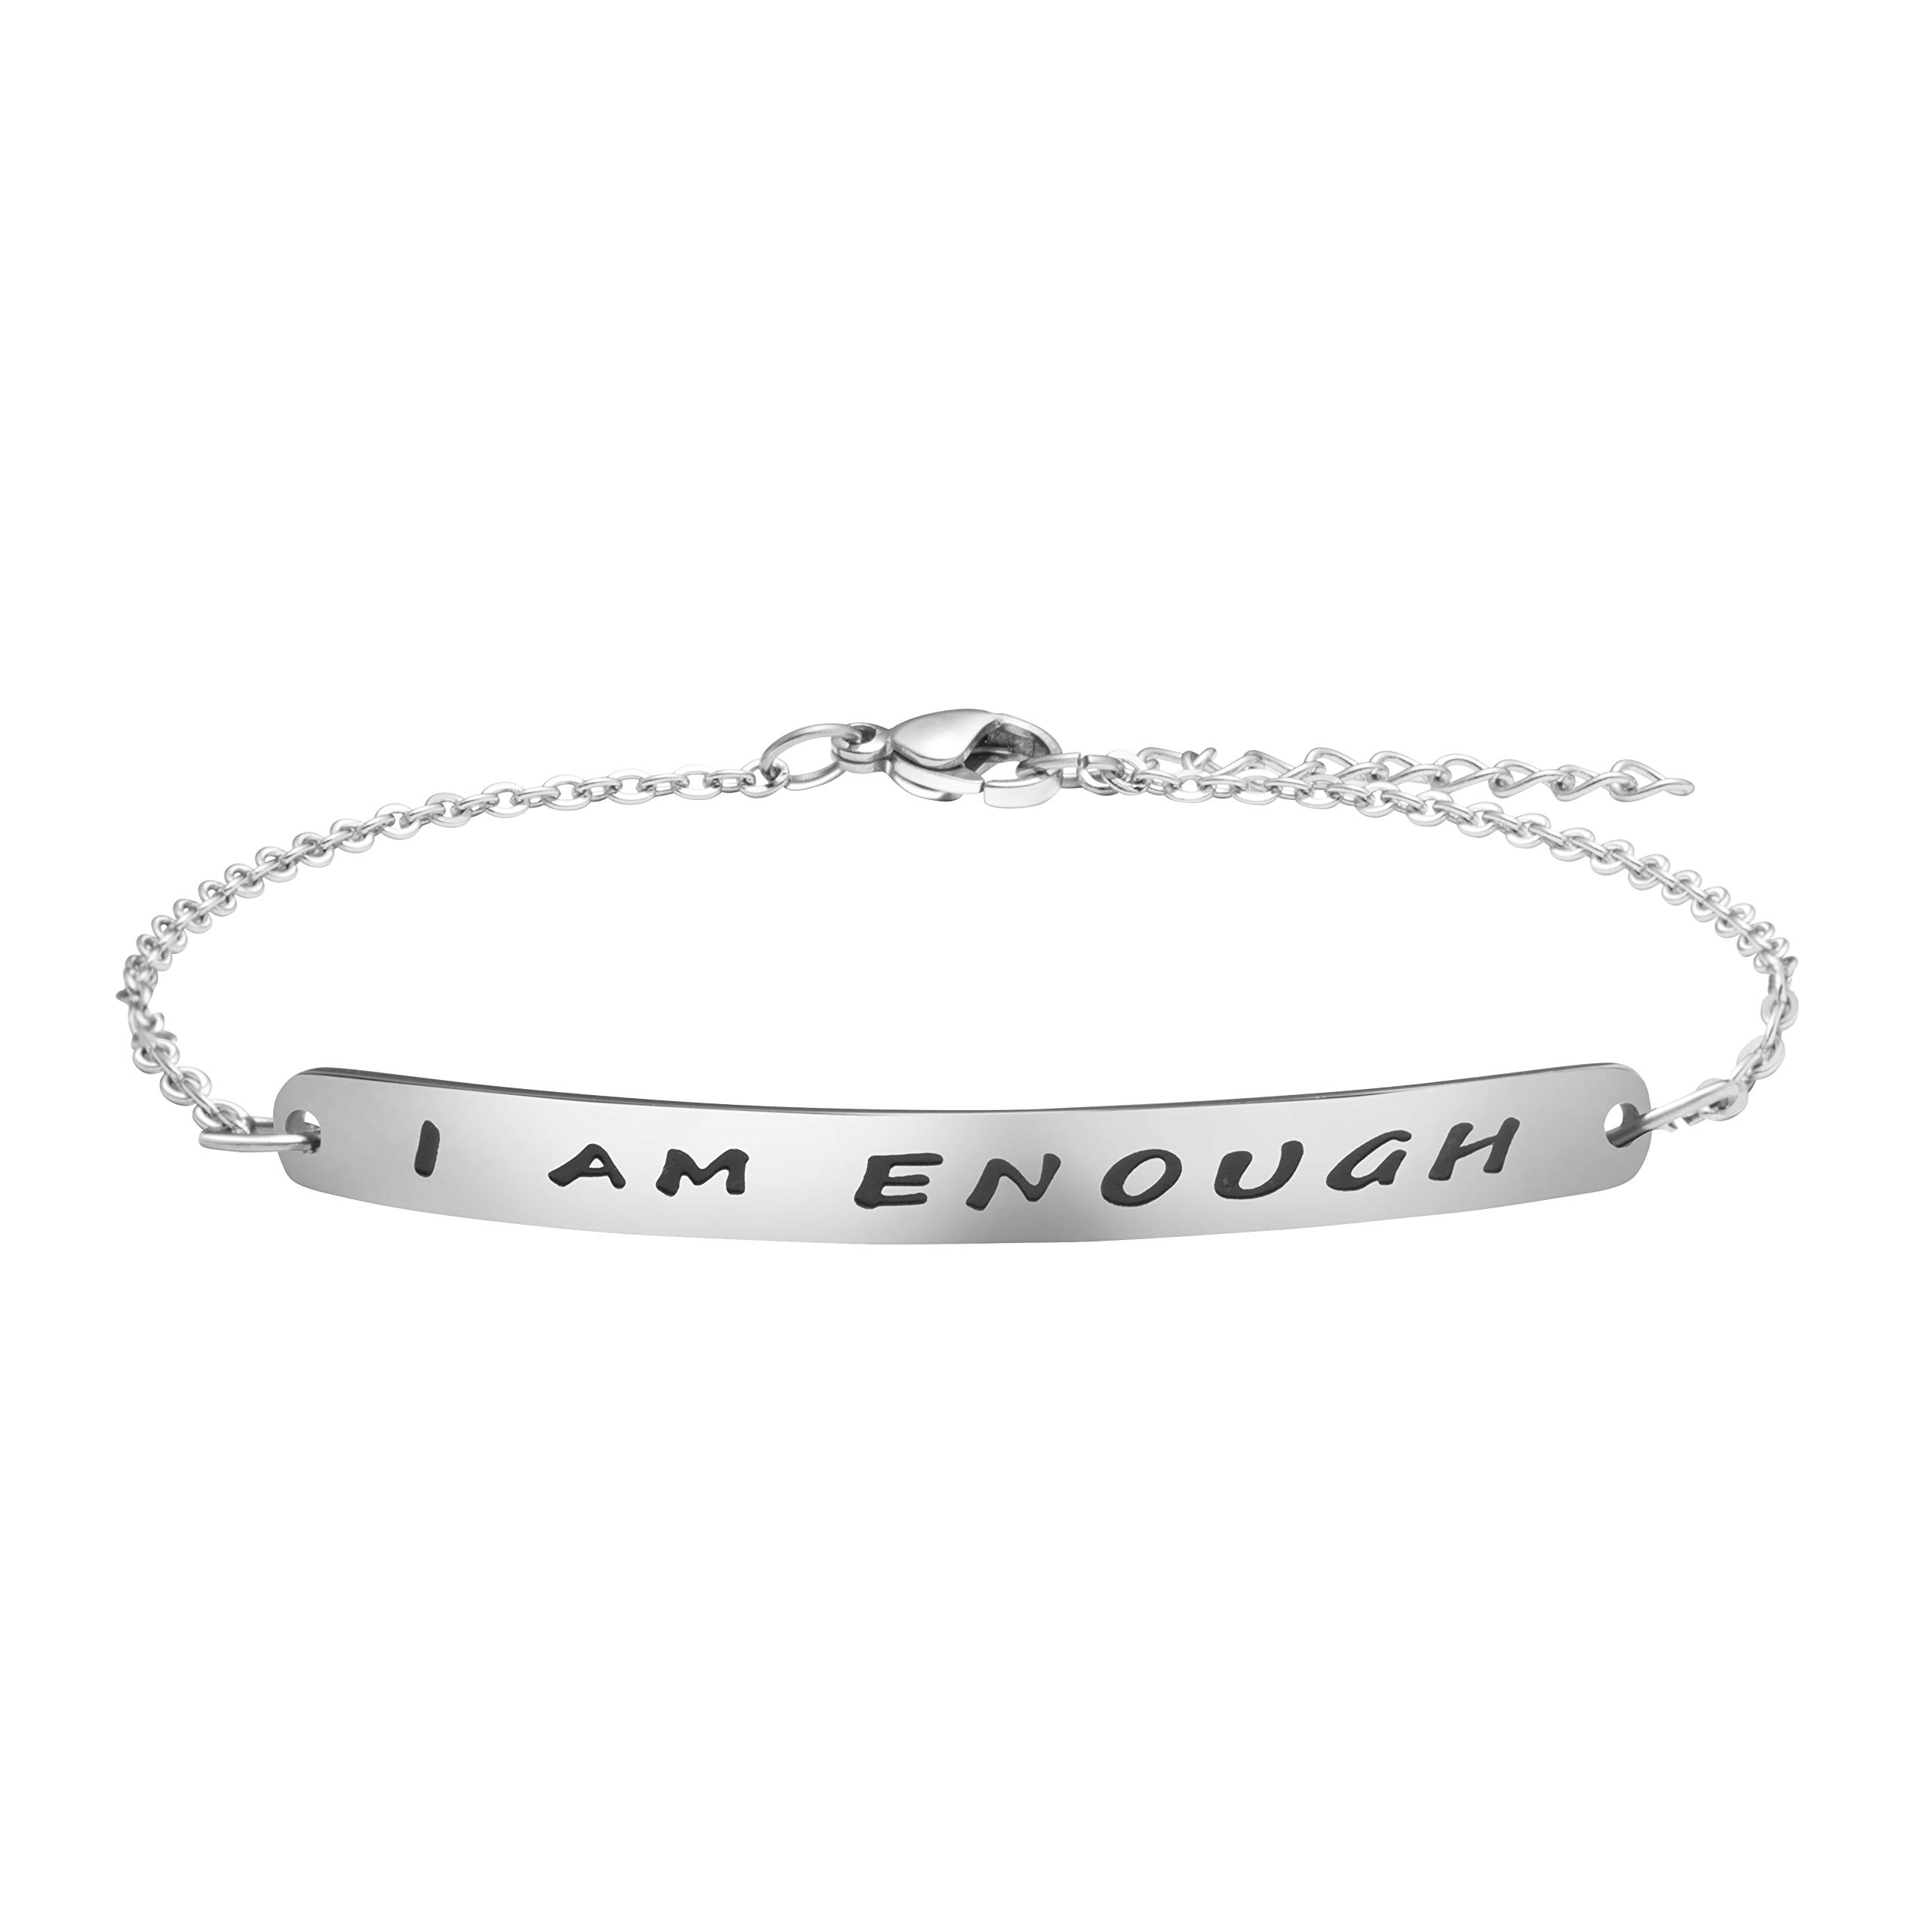 Joycuff Identification Bracelets for Her Encouragement Jewelry Christmas Birthday Gift Stainless Steel Chain I Am Enough Bracelet